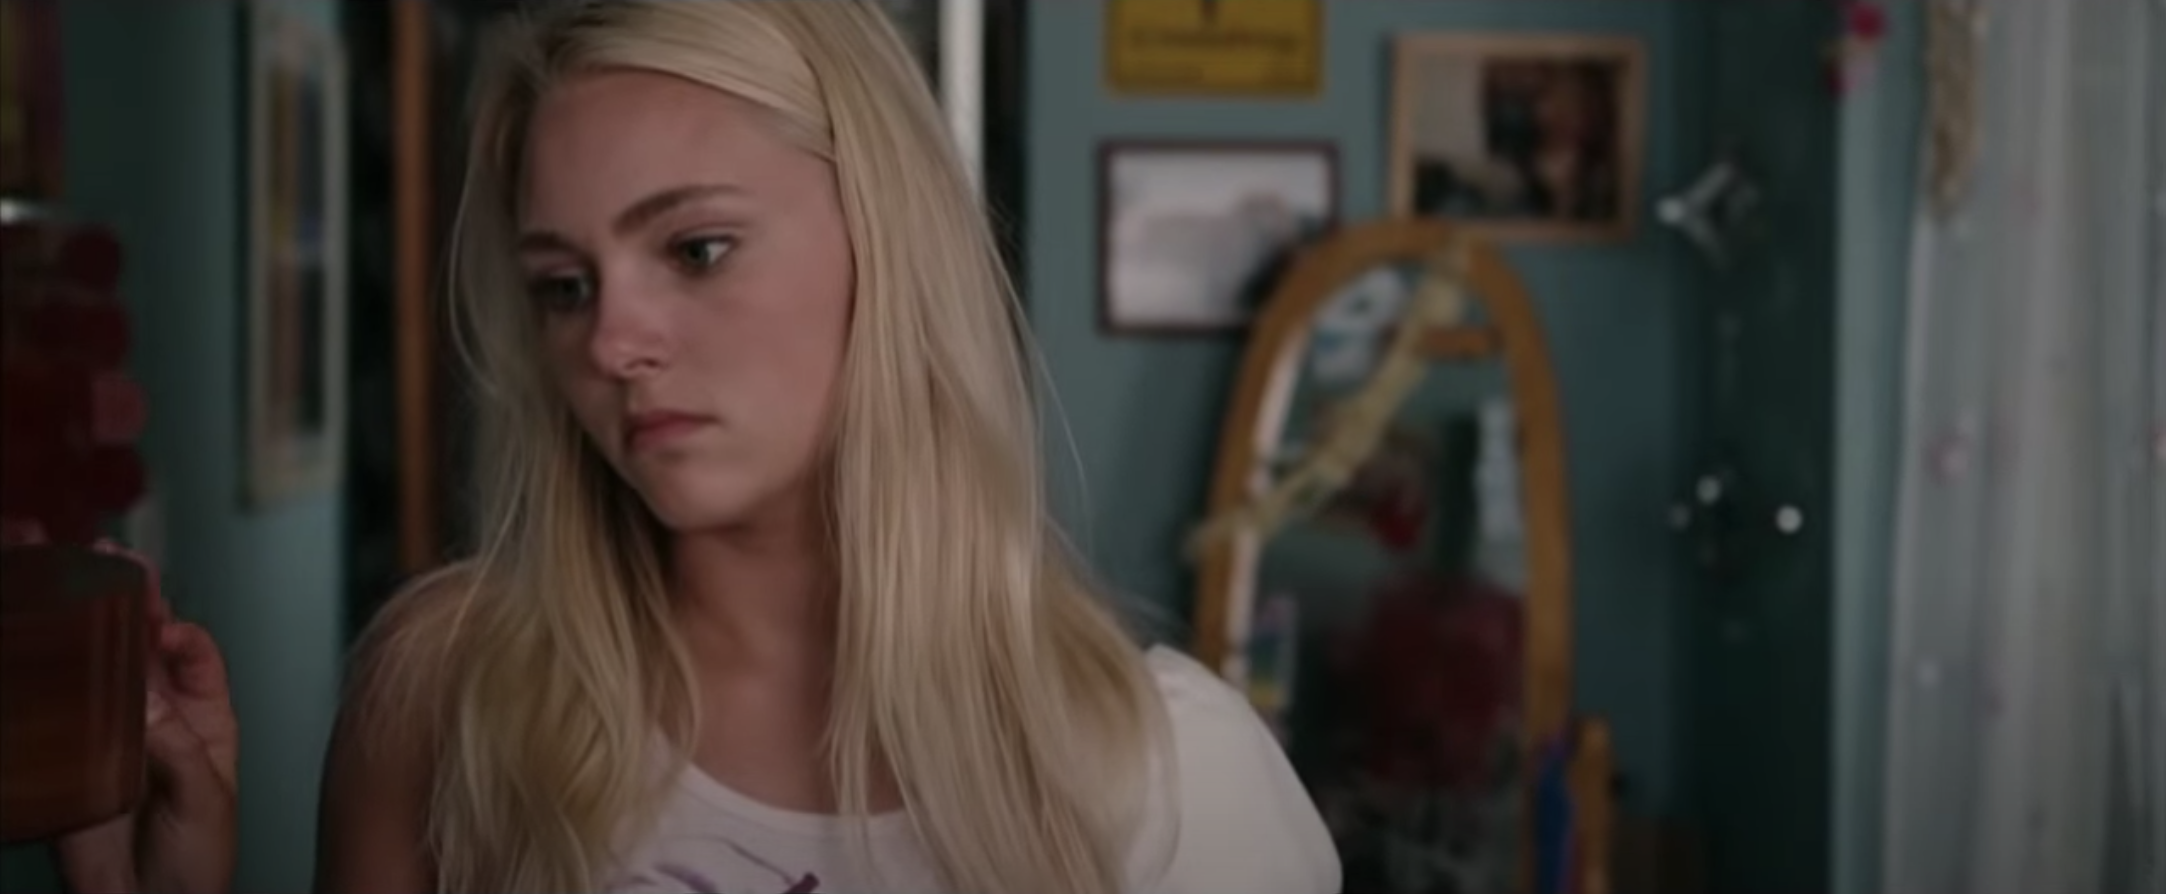 AnnaSophia Robb thinking while in her room